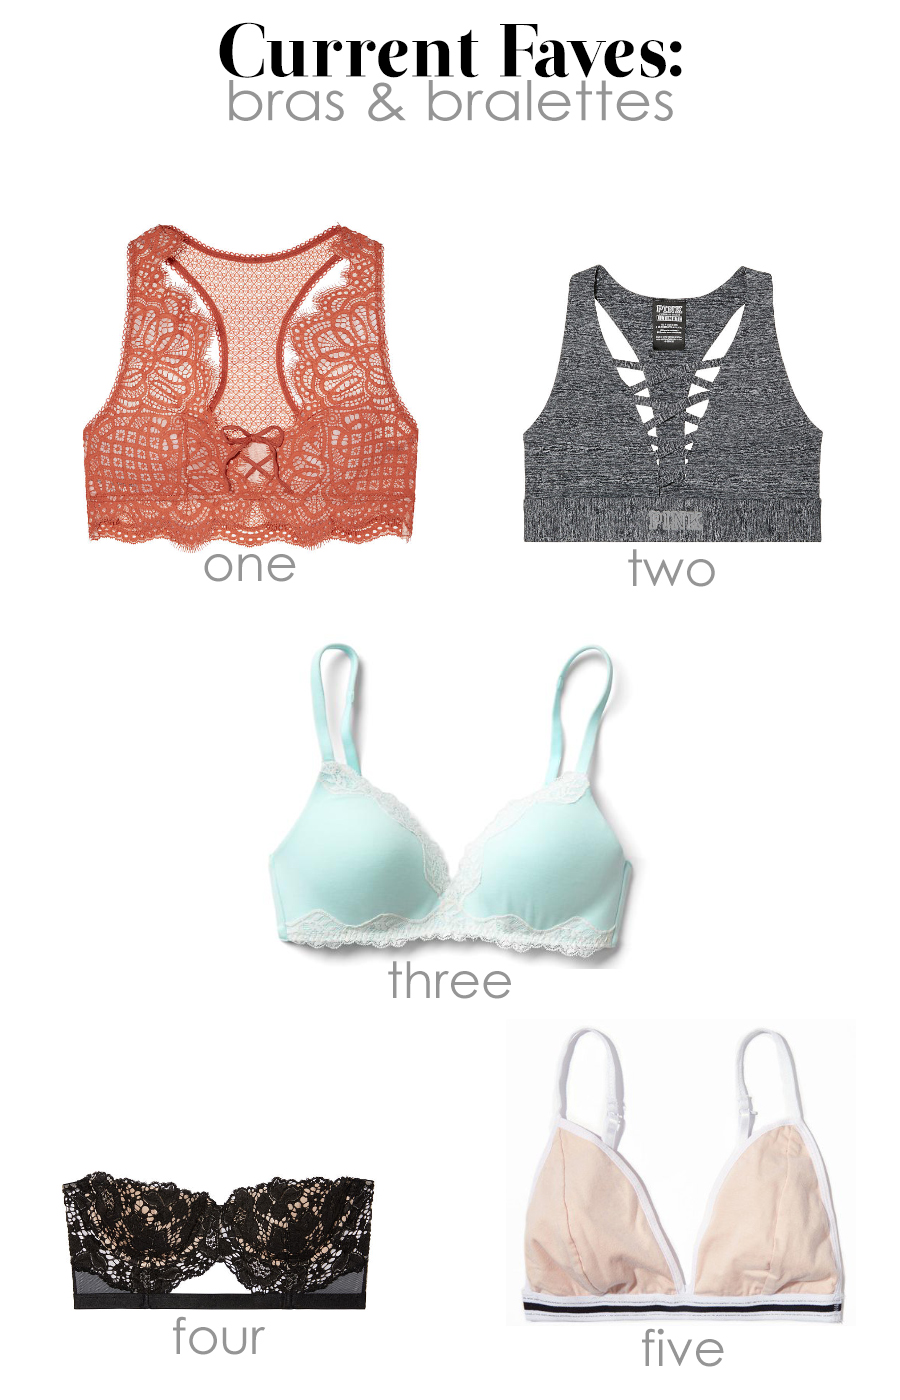 A few fashionable suggestions for your next purchase in intimates. The best of bras and bralettes